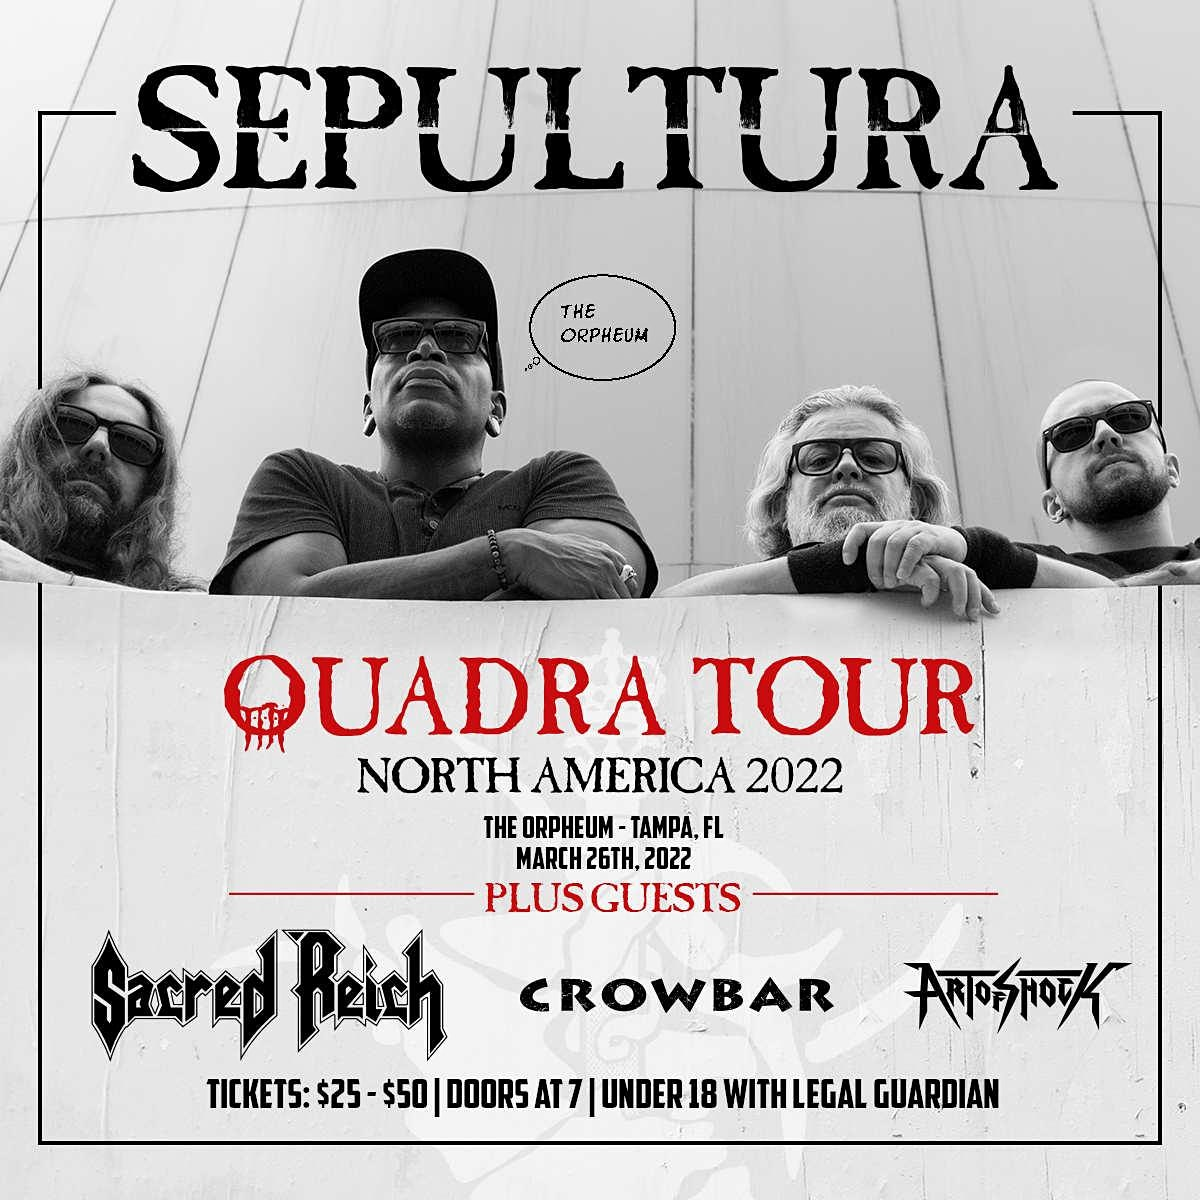 Sepultura, Sacred Reich, Crowbar, and Art of Shock in Tampa at the Orpheum